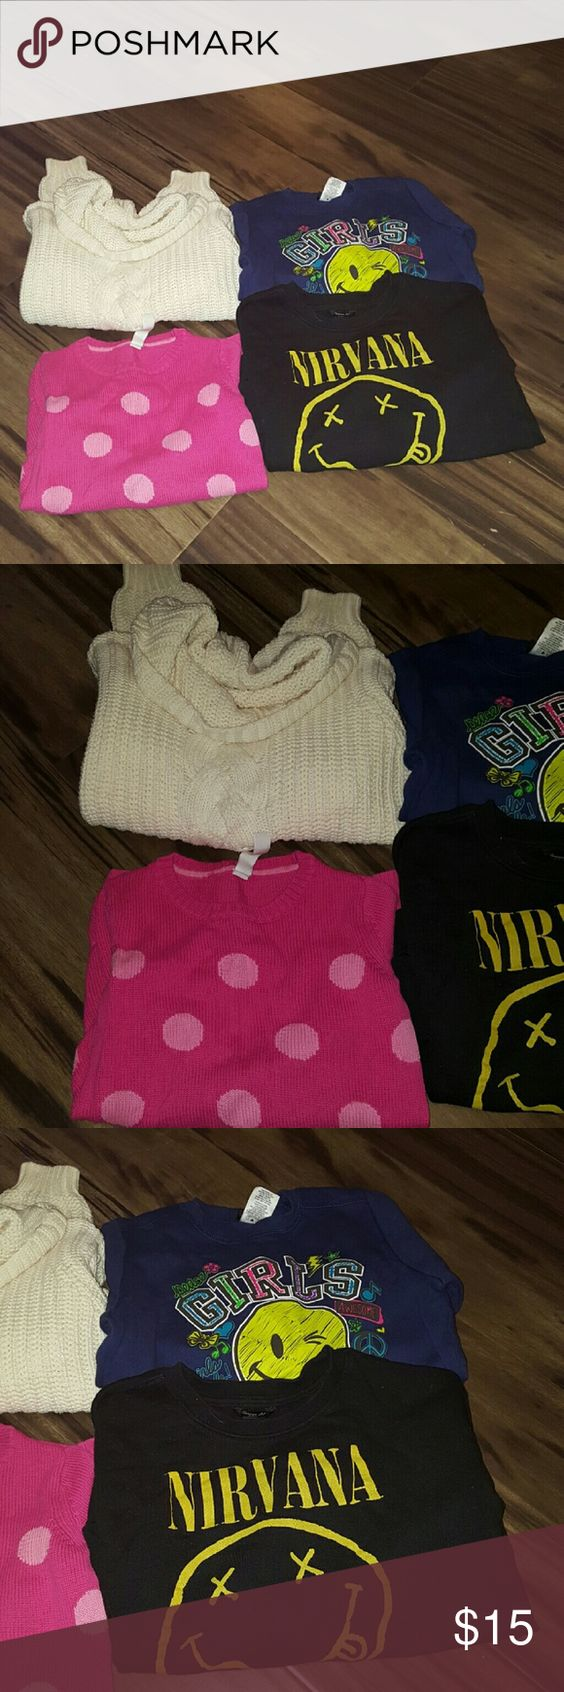 Bundle of little girl's sweaters Bundle of 4 little girls sweaters all in great condition.  White turtle neck is a 9/10 but fits more like a 7/8, pink one is a 6x, nirvana is a medium, and the Navy girls varsity one is also a 6x Forever 21 Shirts & Tops Sweaters